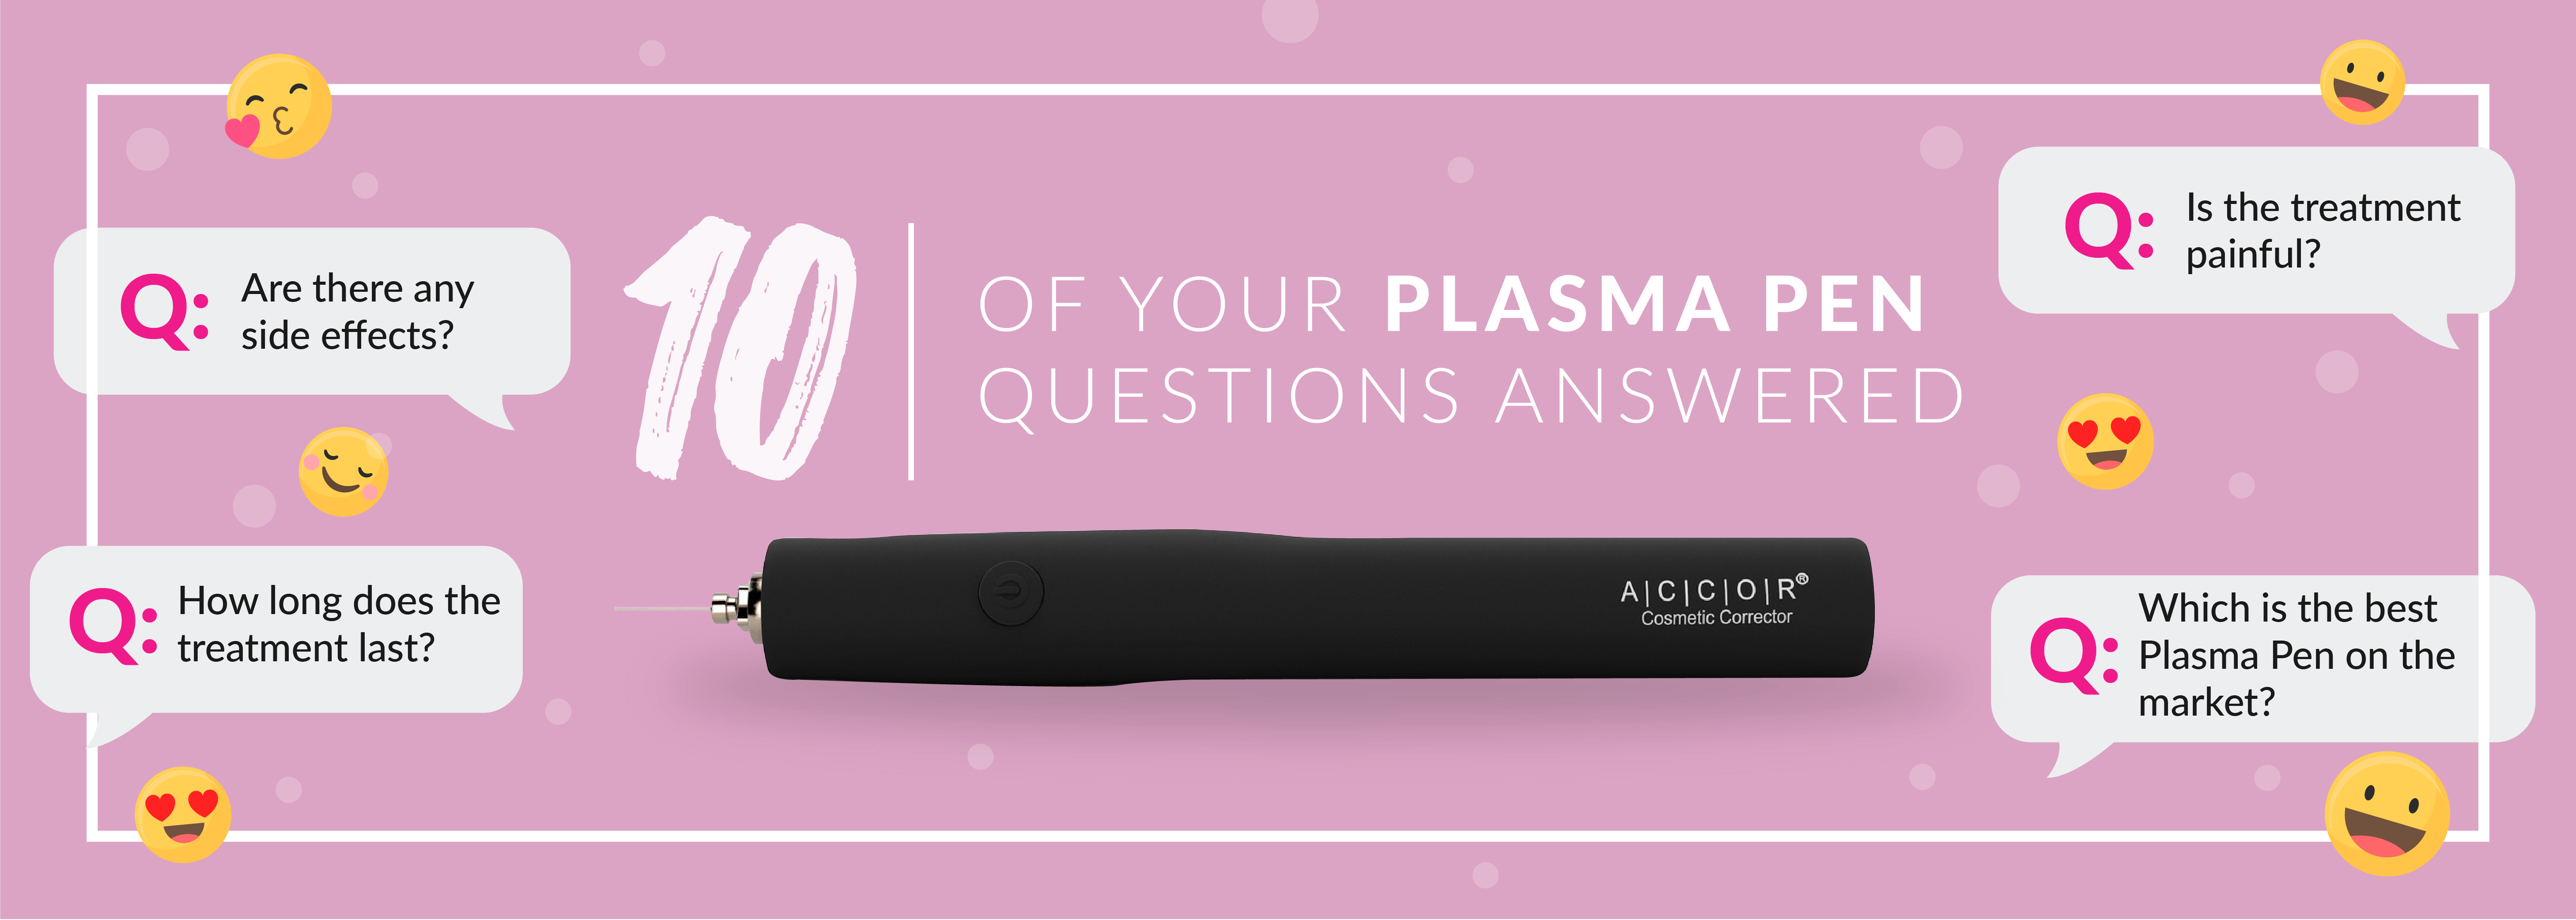 Artboard 23 - 10 of your Plasma Pen questions answered